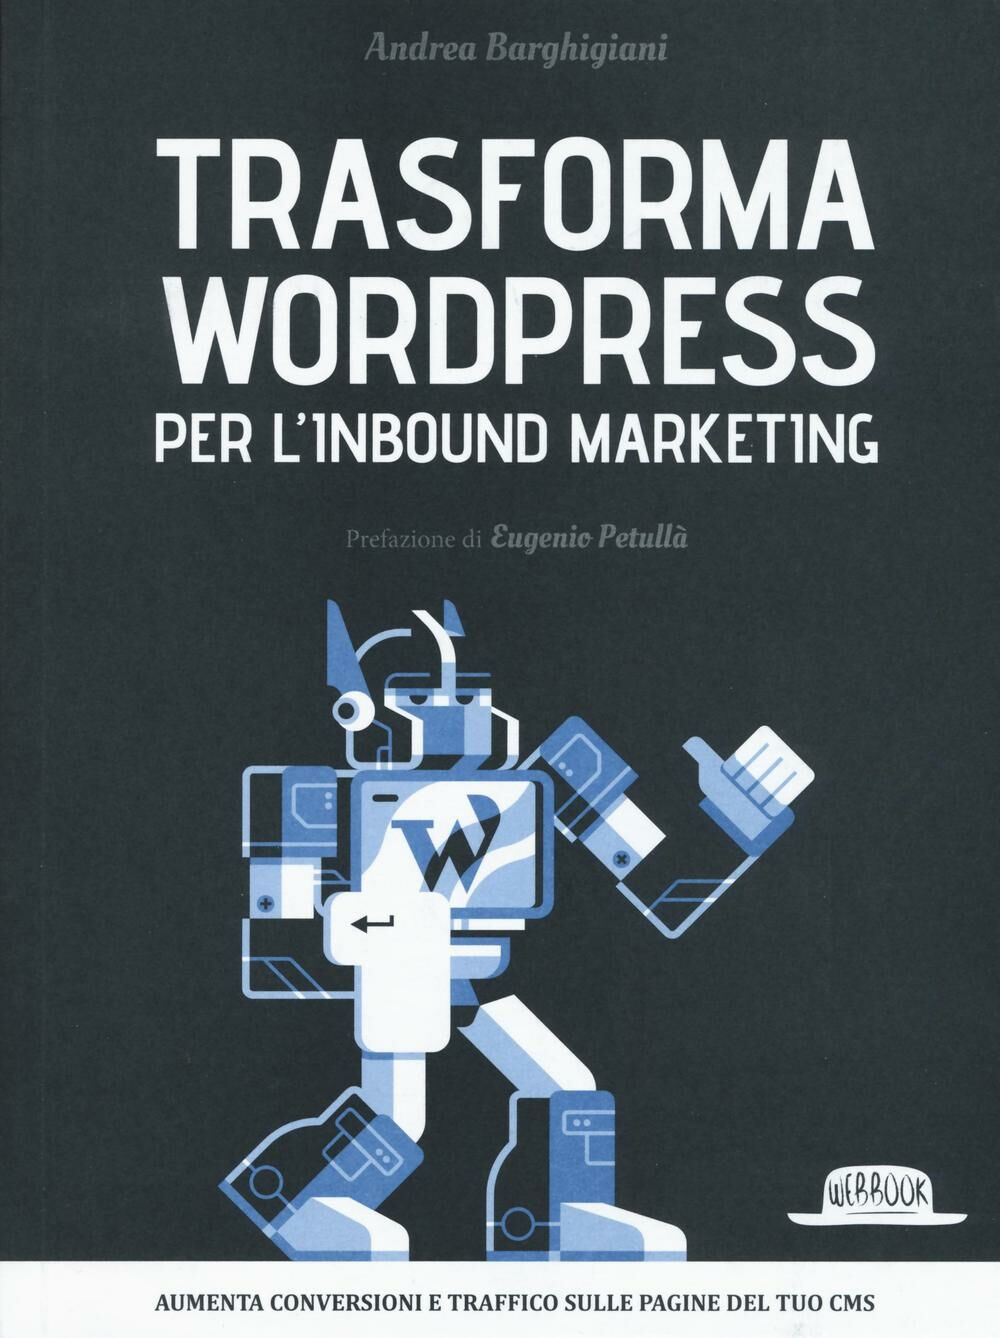 Trasforma WordPress per l'inbound marketing